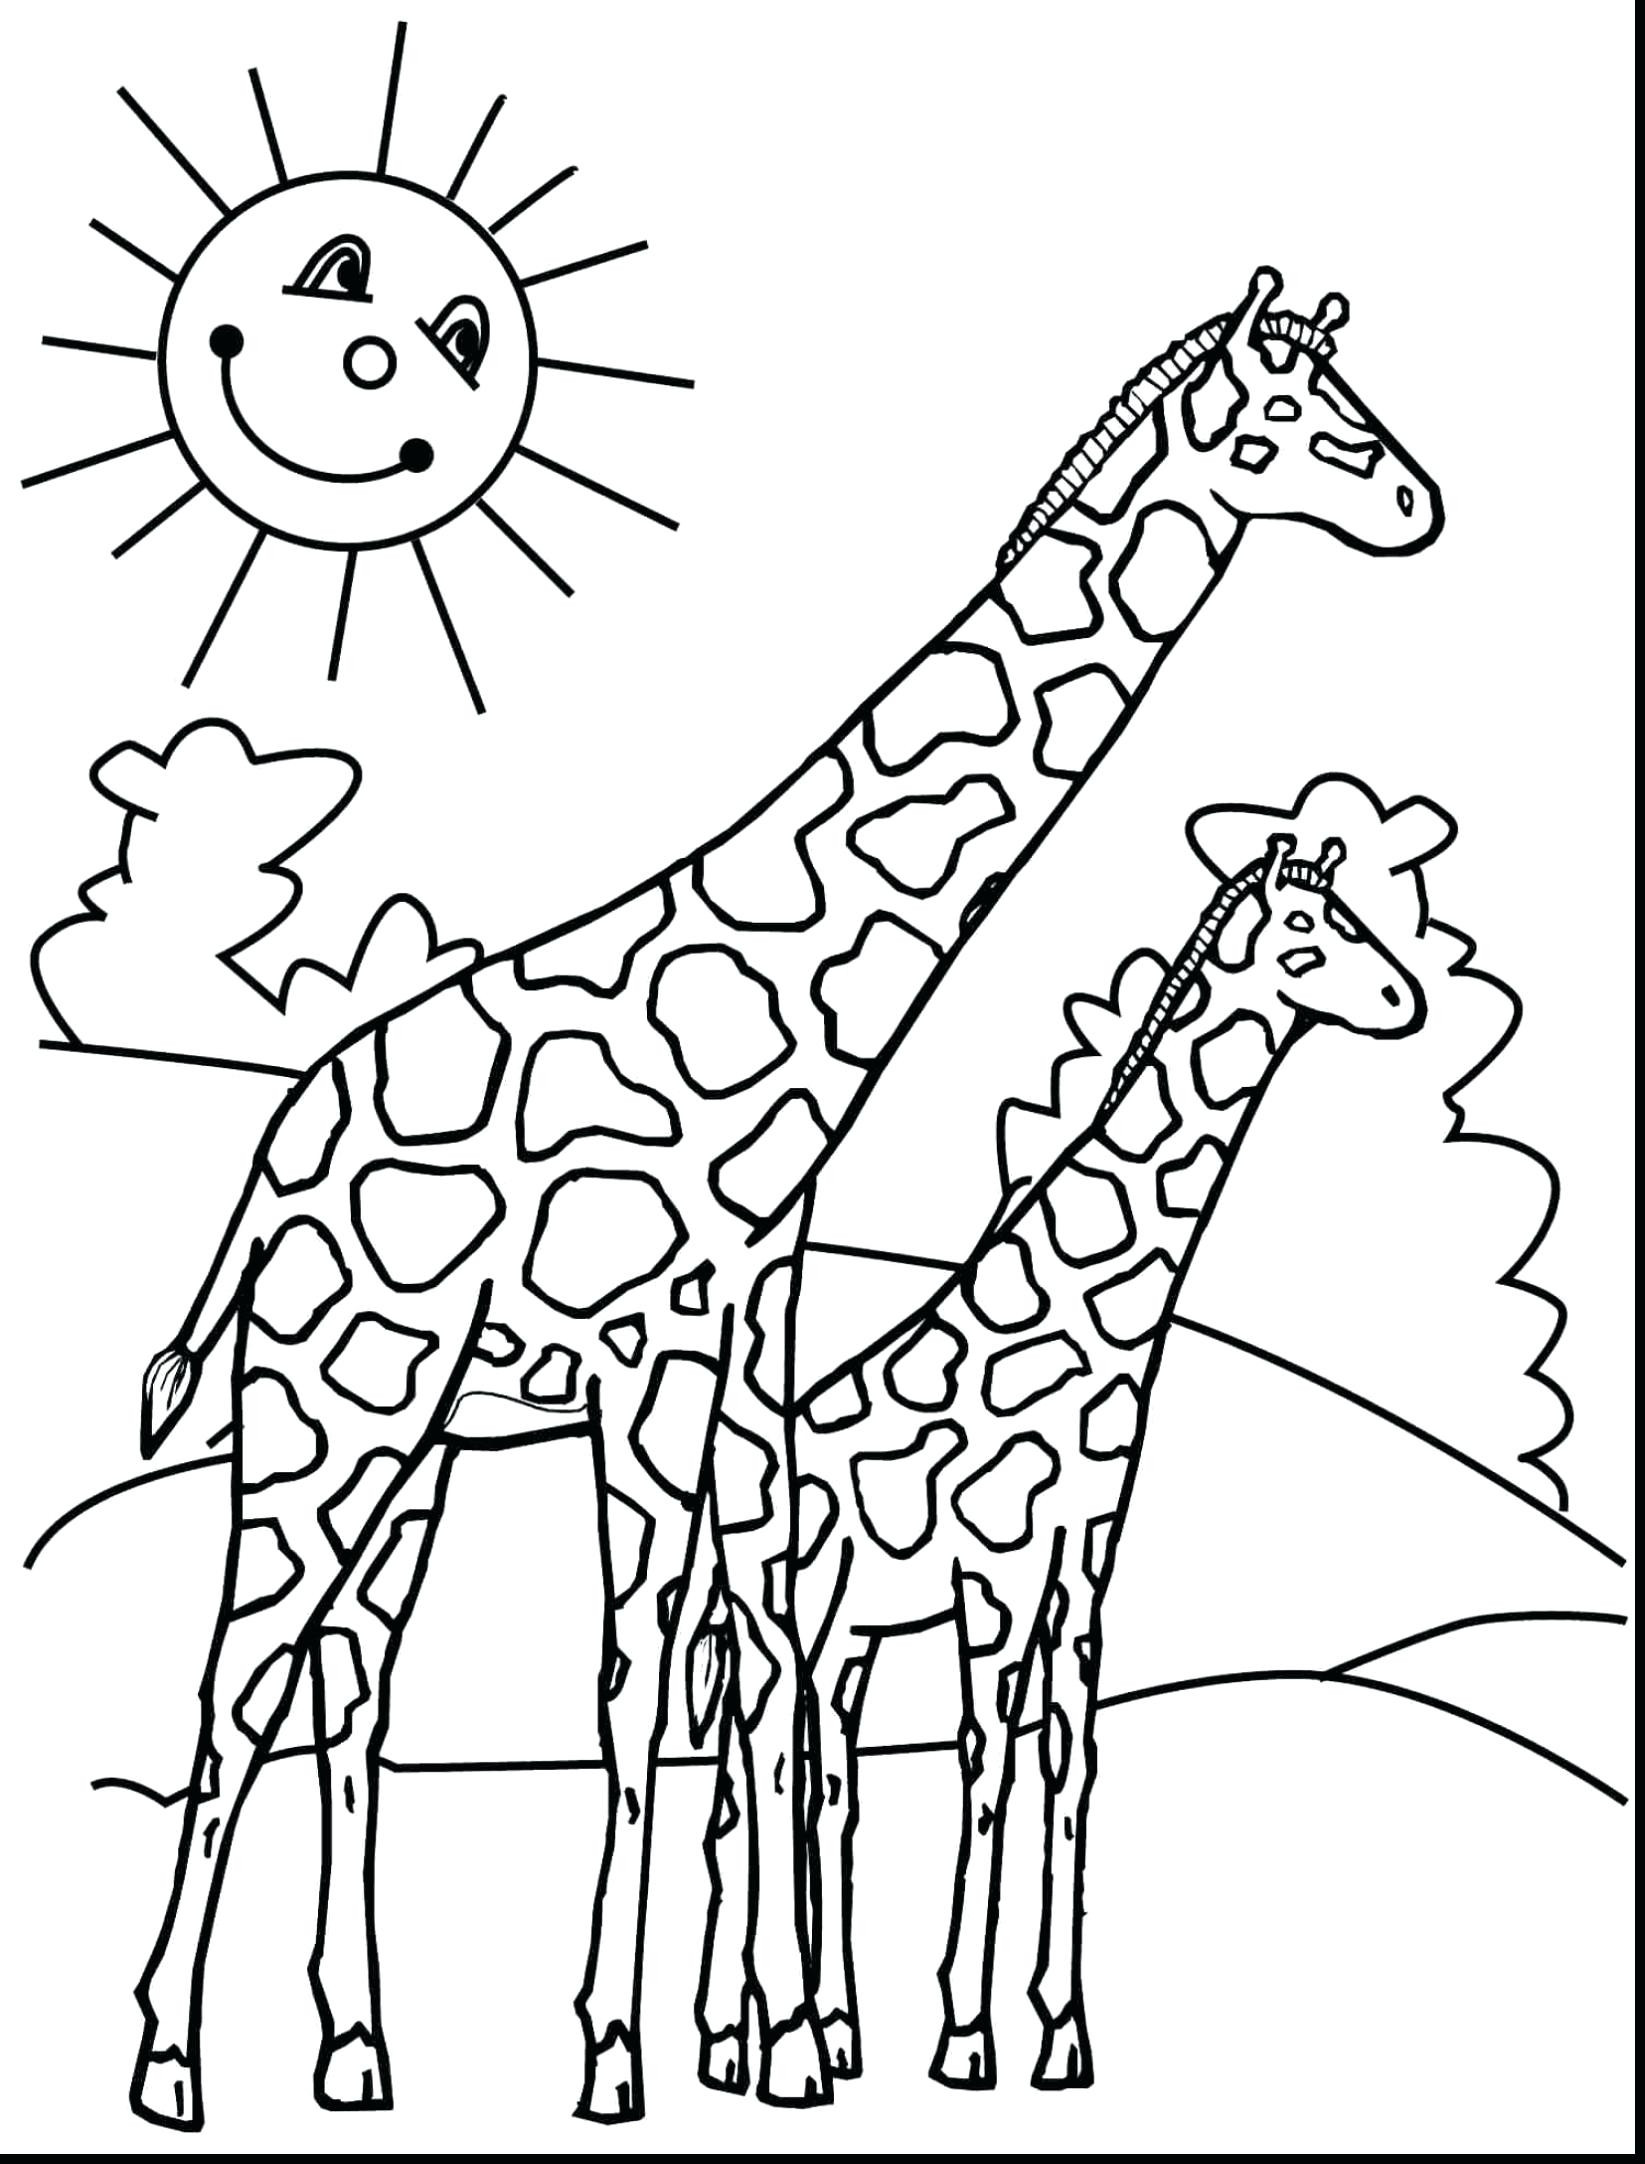 Free Coloring Sheets To Print  Baby Giraffe Coloring Pages Free